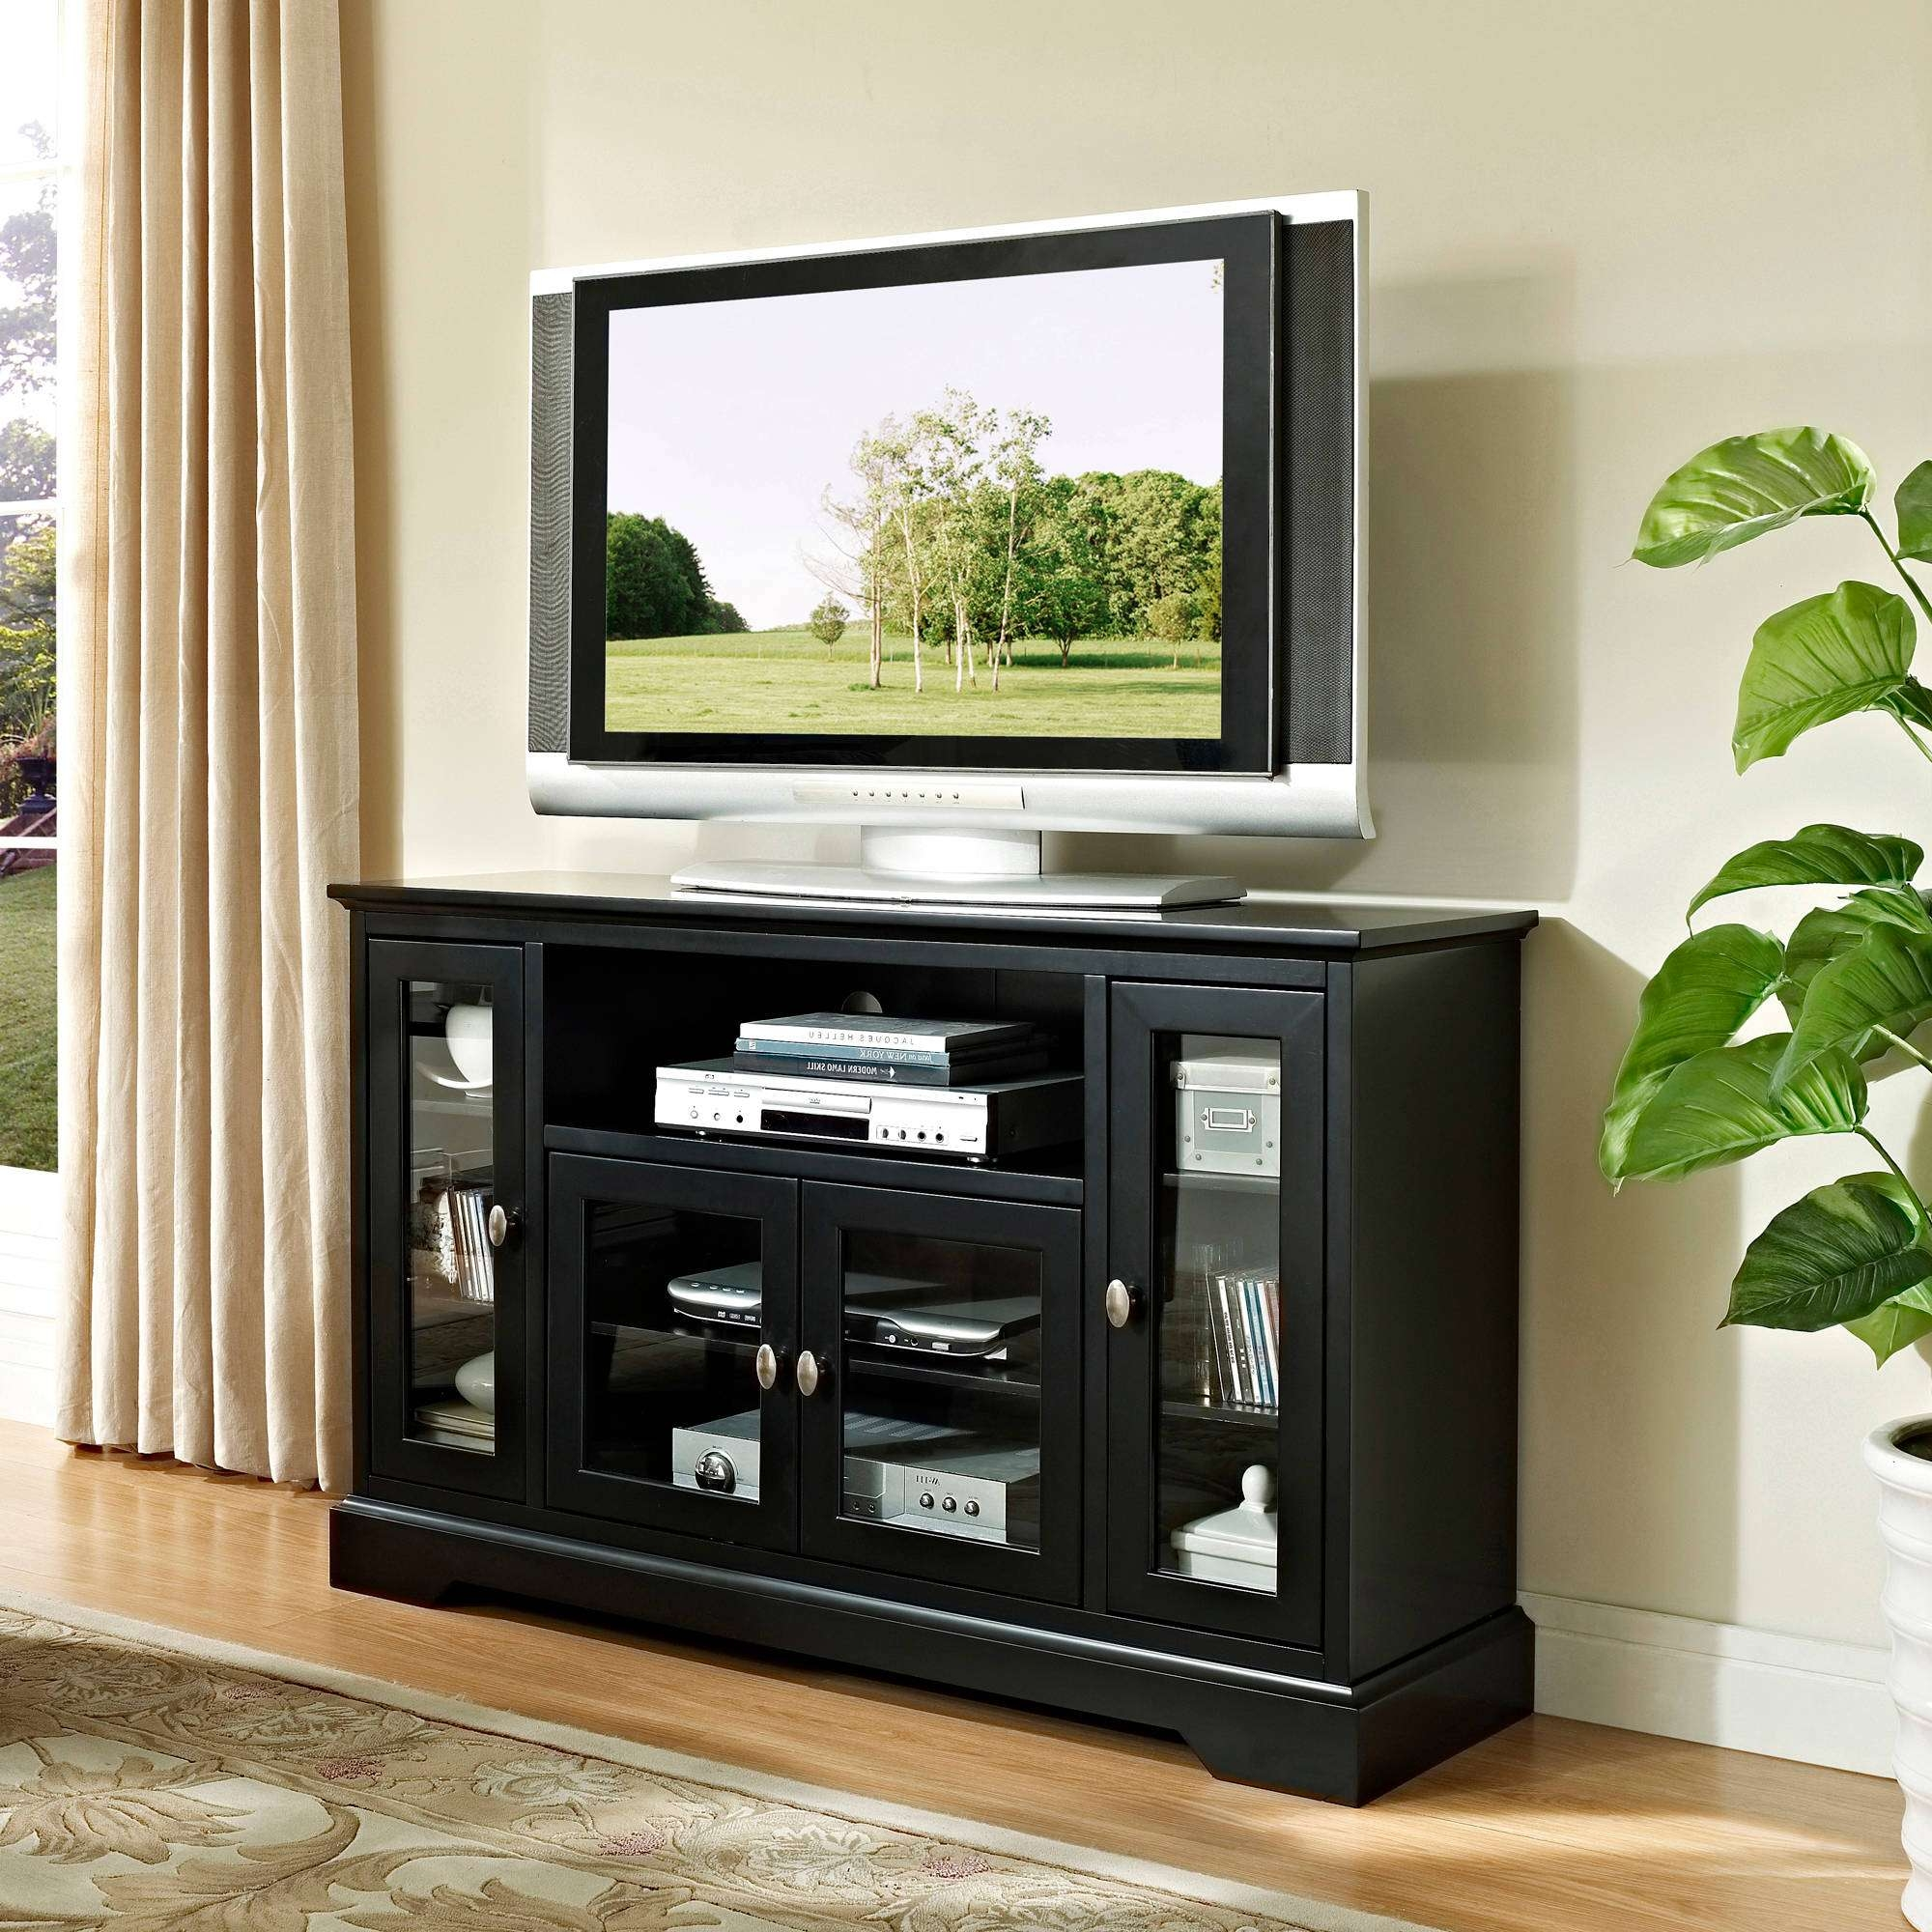 Charm Homelegance Millwood Tv Stand Distressed Ash Homelegance Intended For Tv Stands For 55 Inch Tv (View 5 of 15)